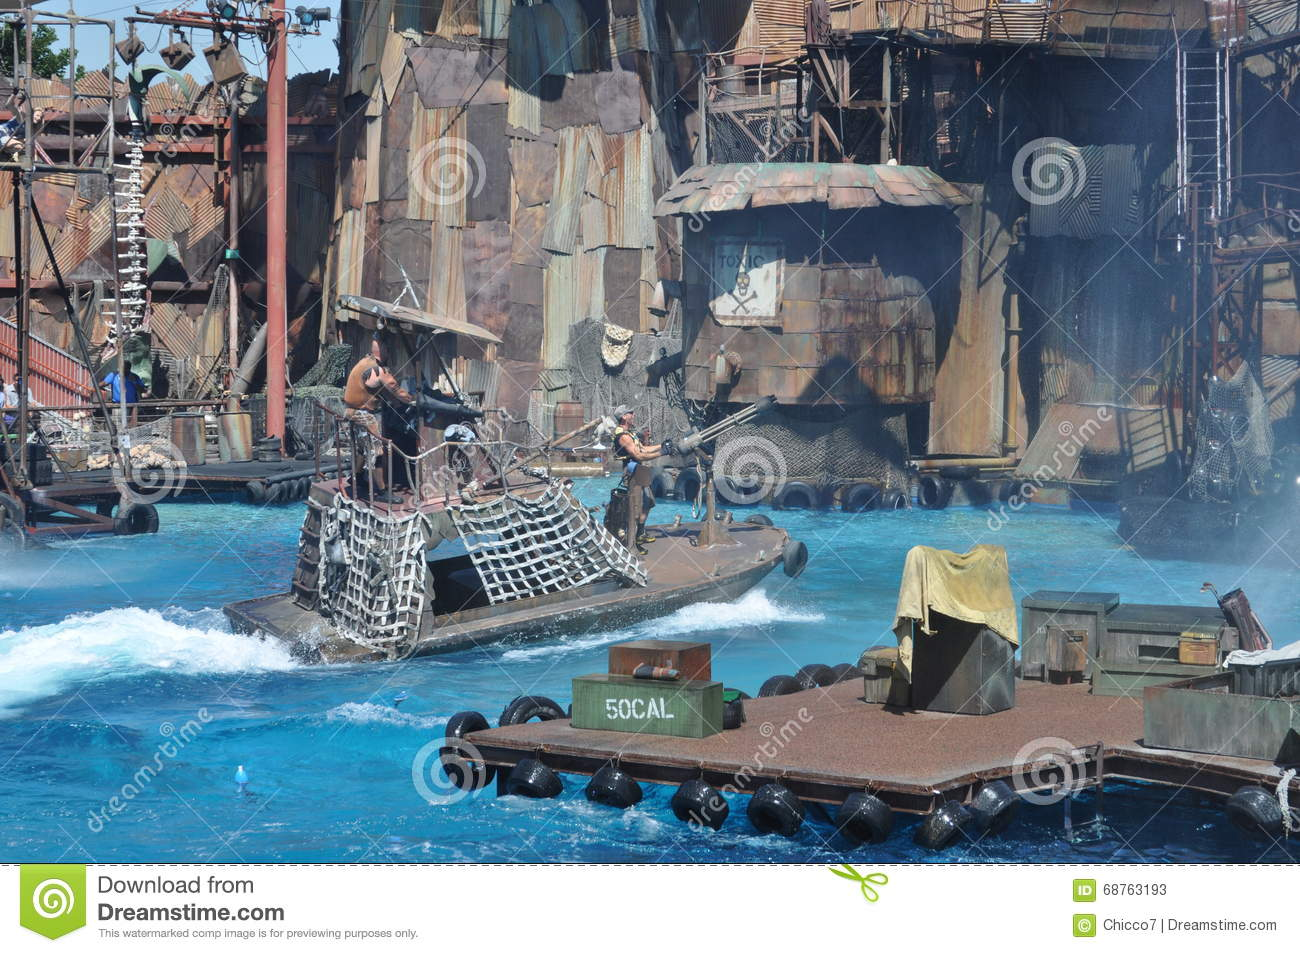 Waterworld show at Universal Studios Holliwood